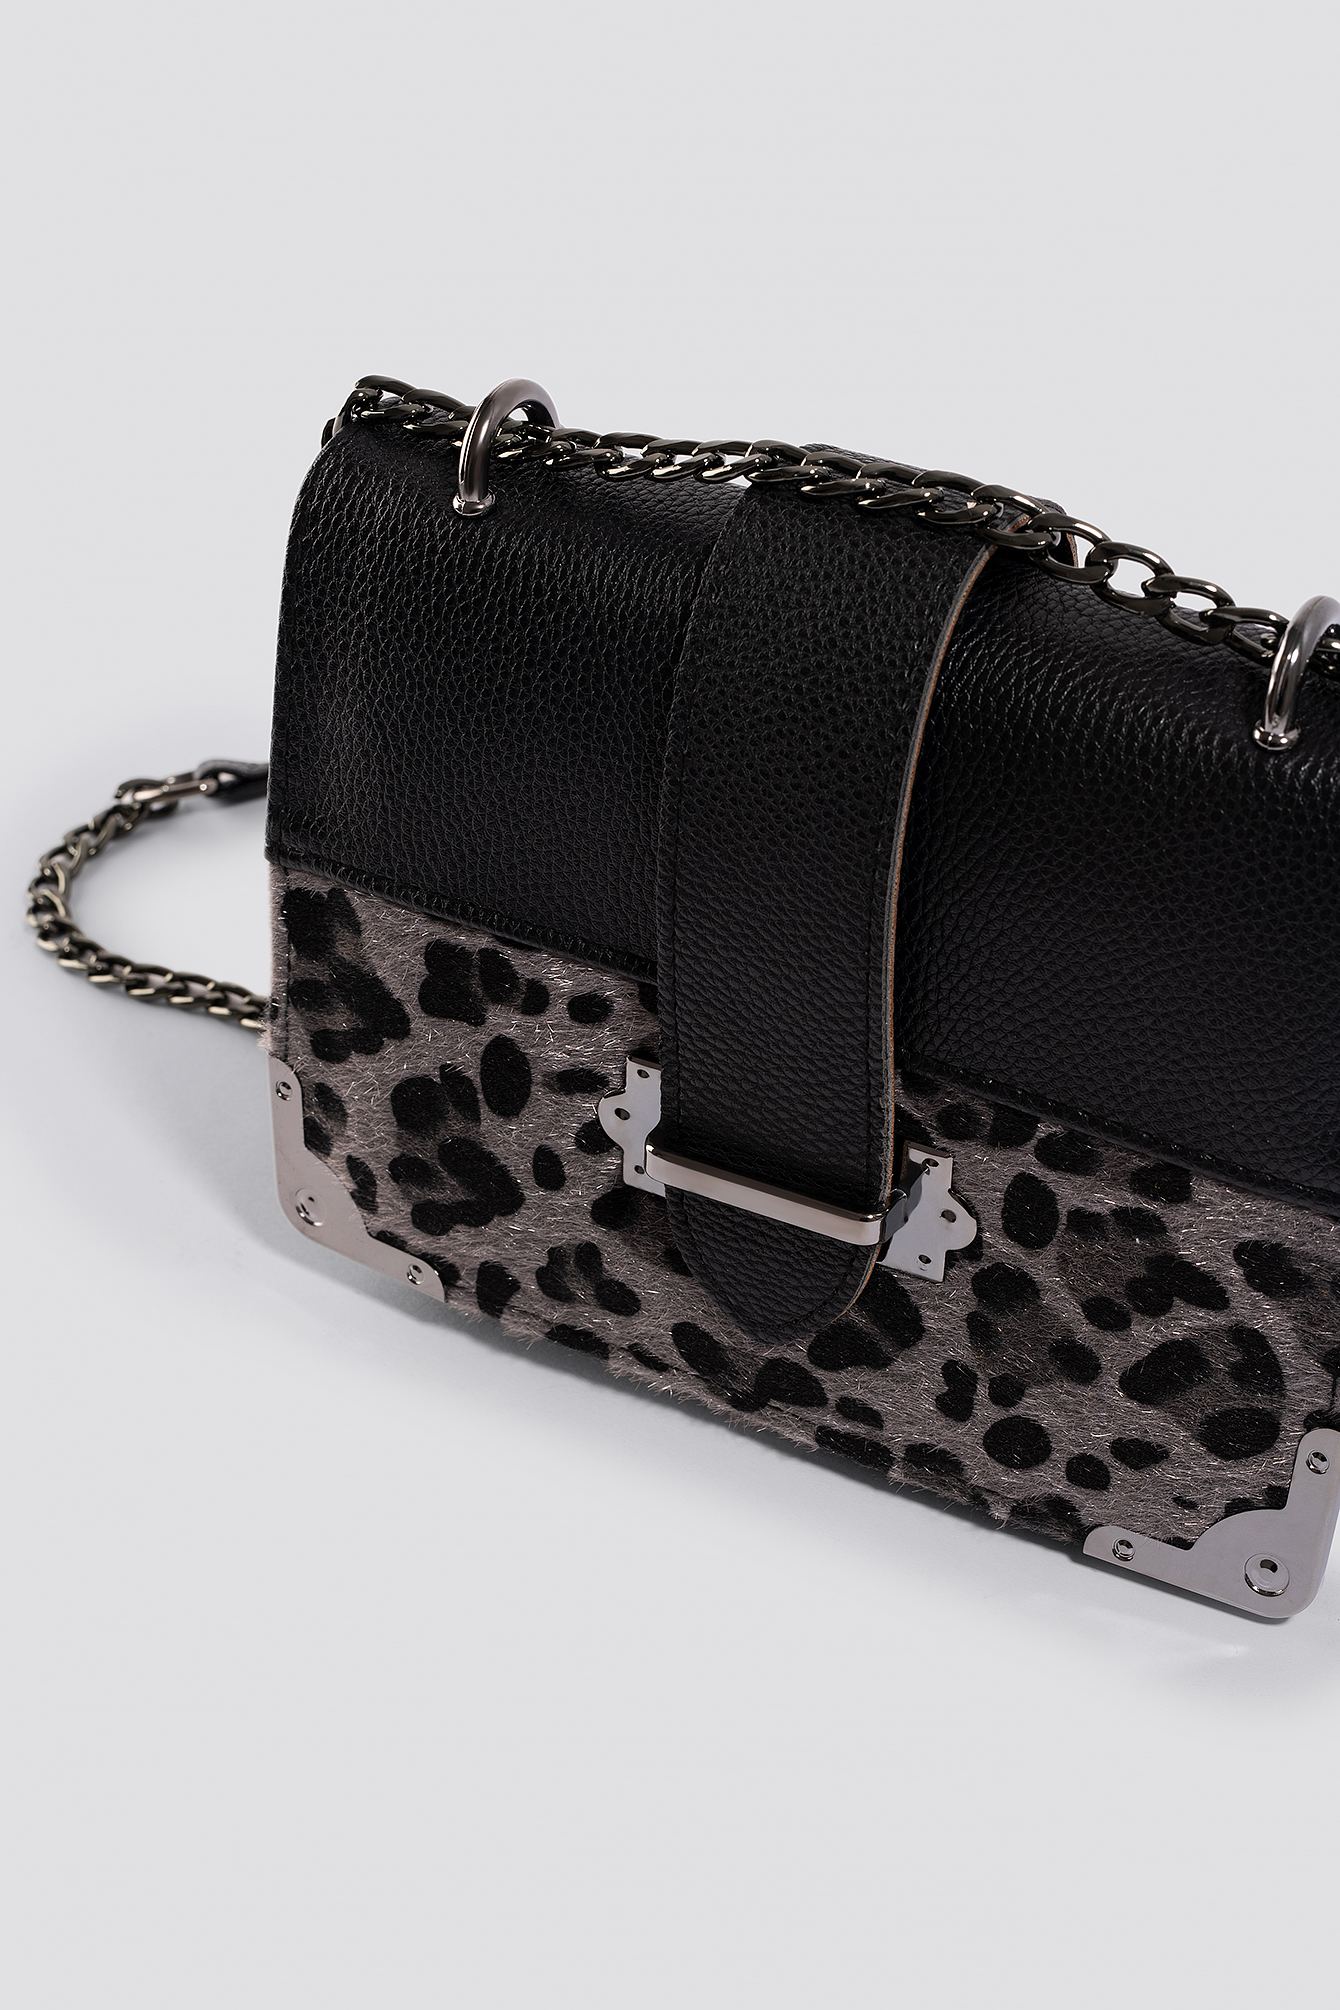 Yol Animal Chain Shoulder Bag NA-KD.COM